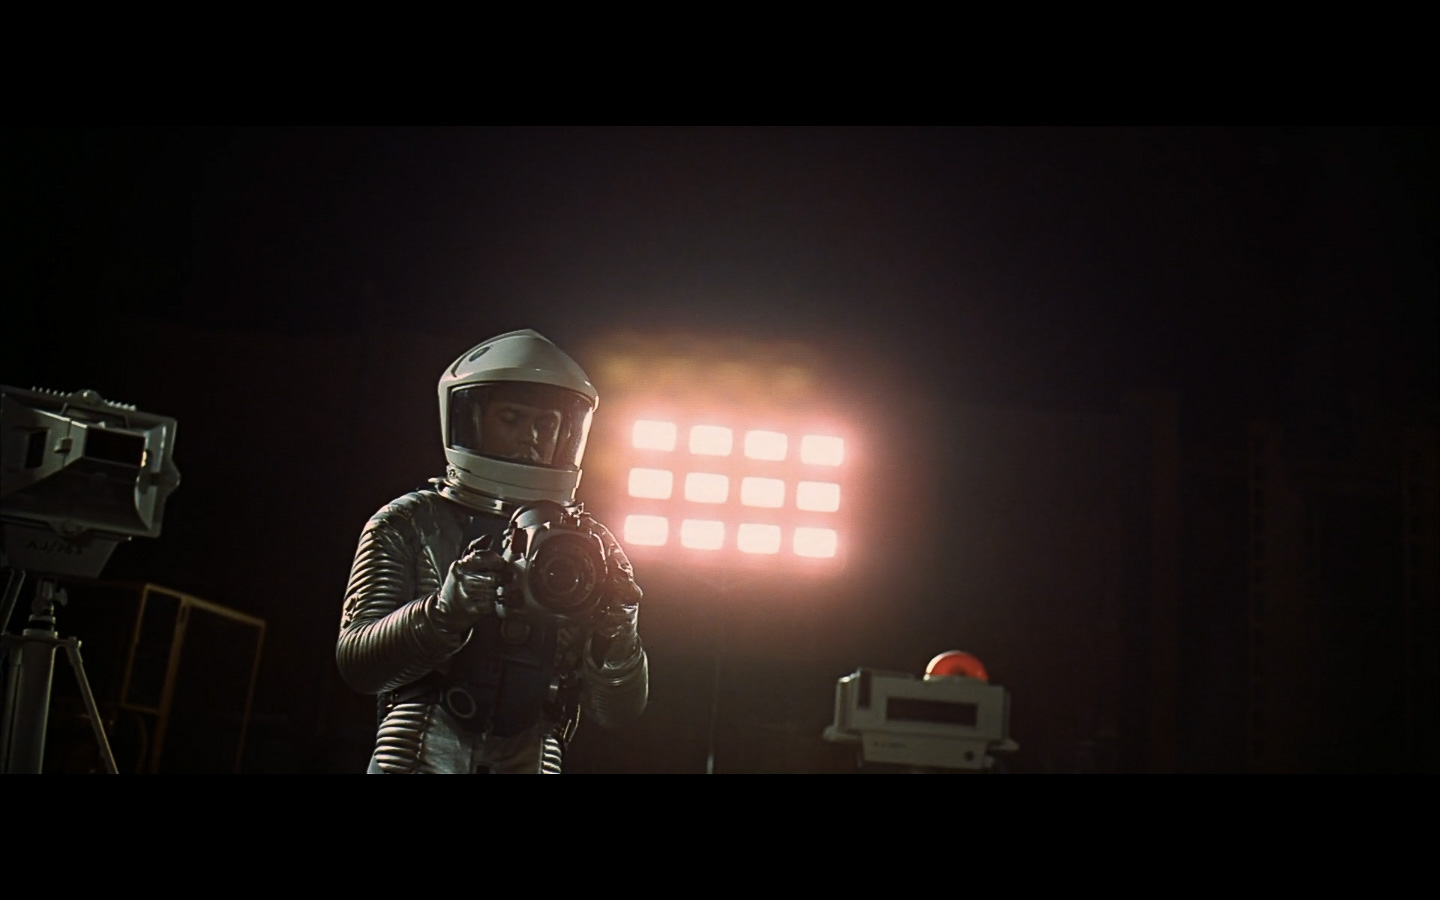 scene on the moon obelisk - space odyssey-23